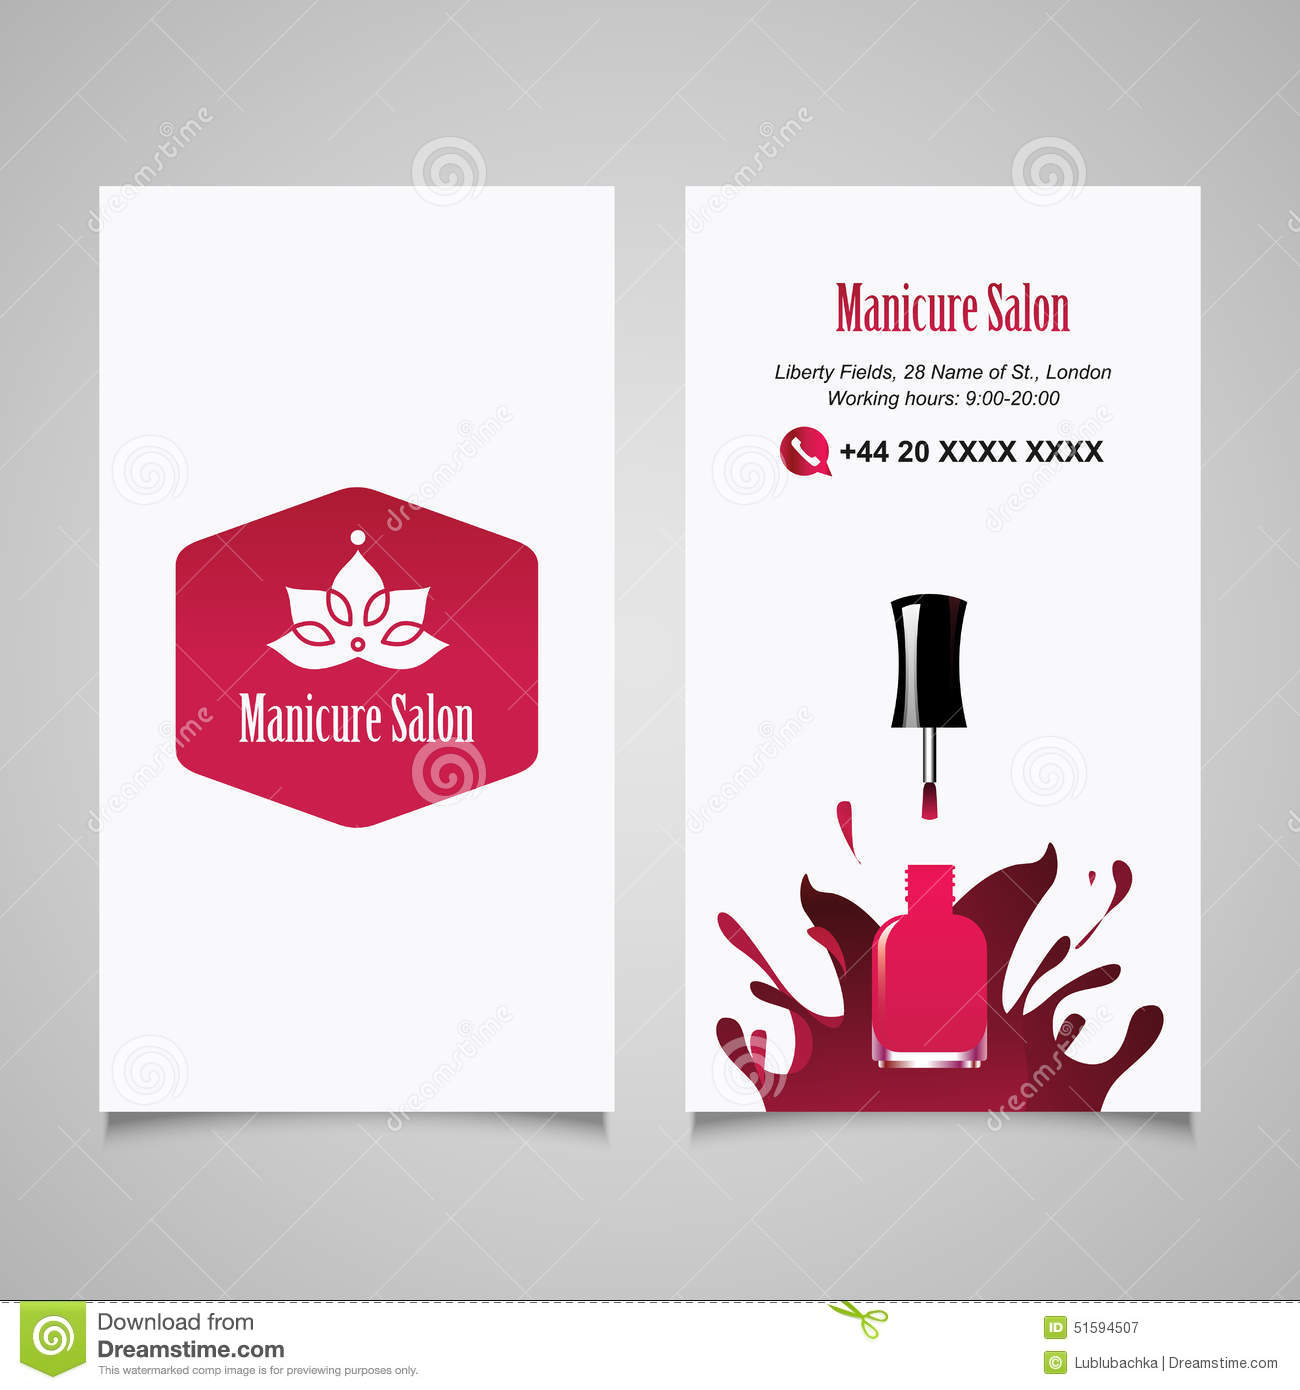 manicure salon business card vector design templates set